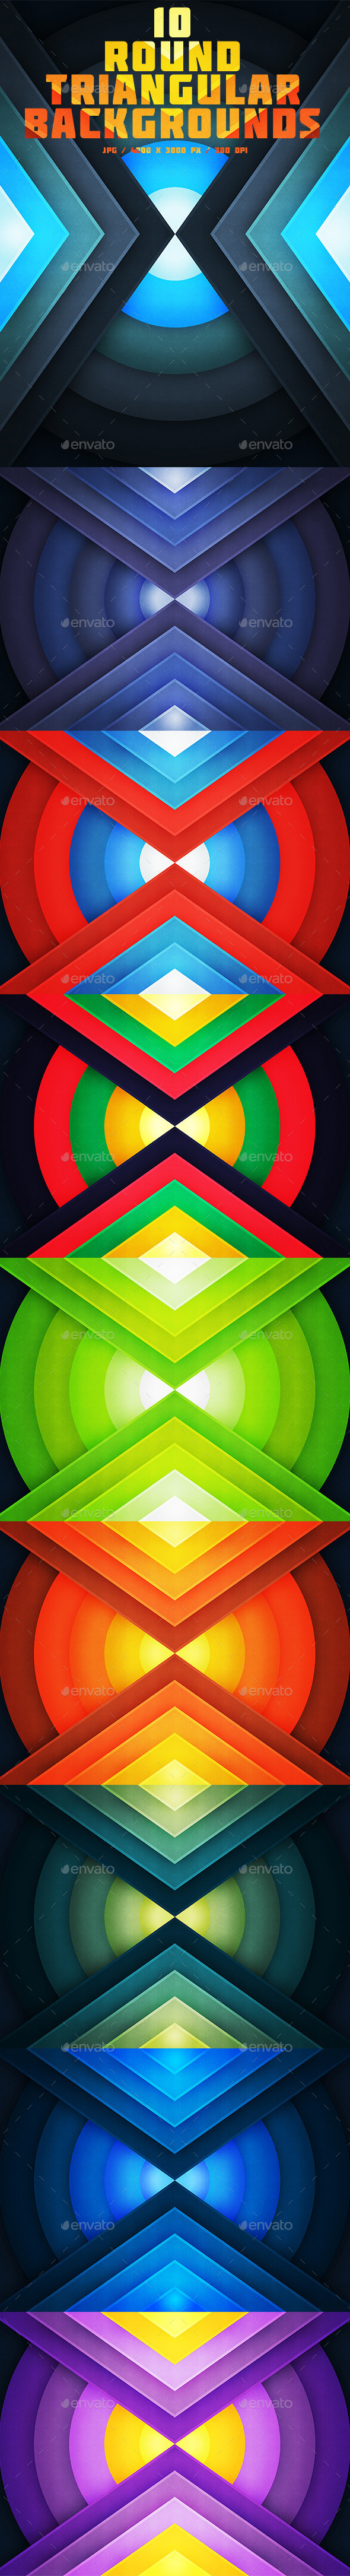 10 Round Triangular Backgrounds - Abstract Backgrounds